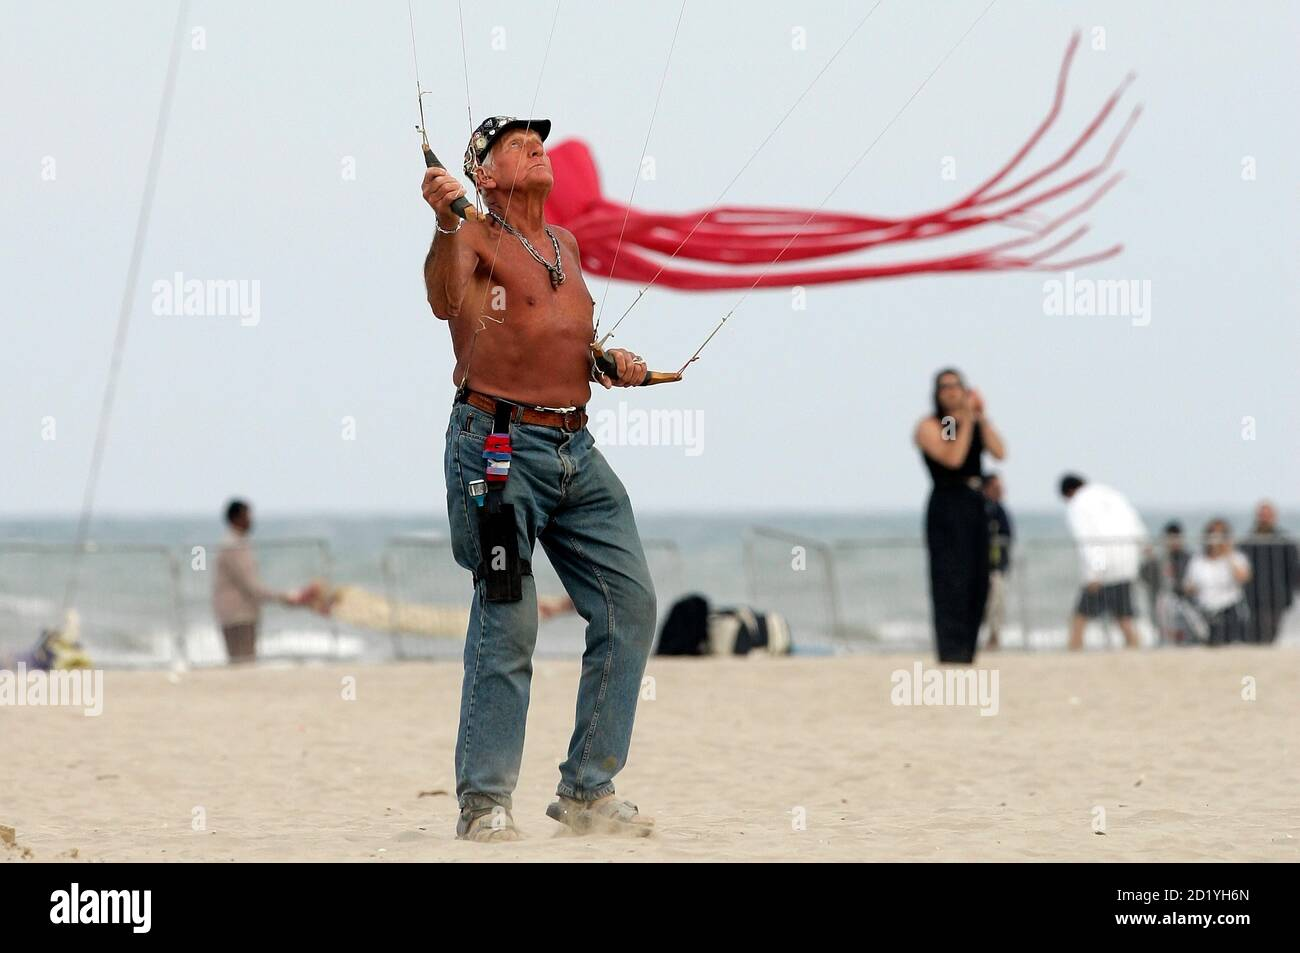 Professional kite flyer Ray Bethell of Canada flies his kites during an international kite festival in Cervia, northeast Italy, April 30, 2007. REUTERS/Alessandro Bianchi (ITALY) Foto Stock